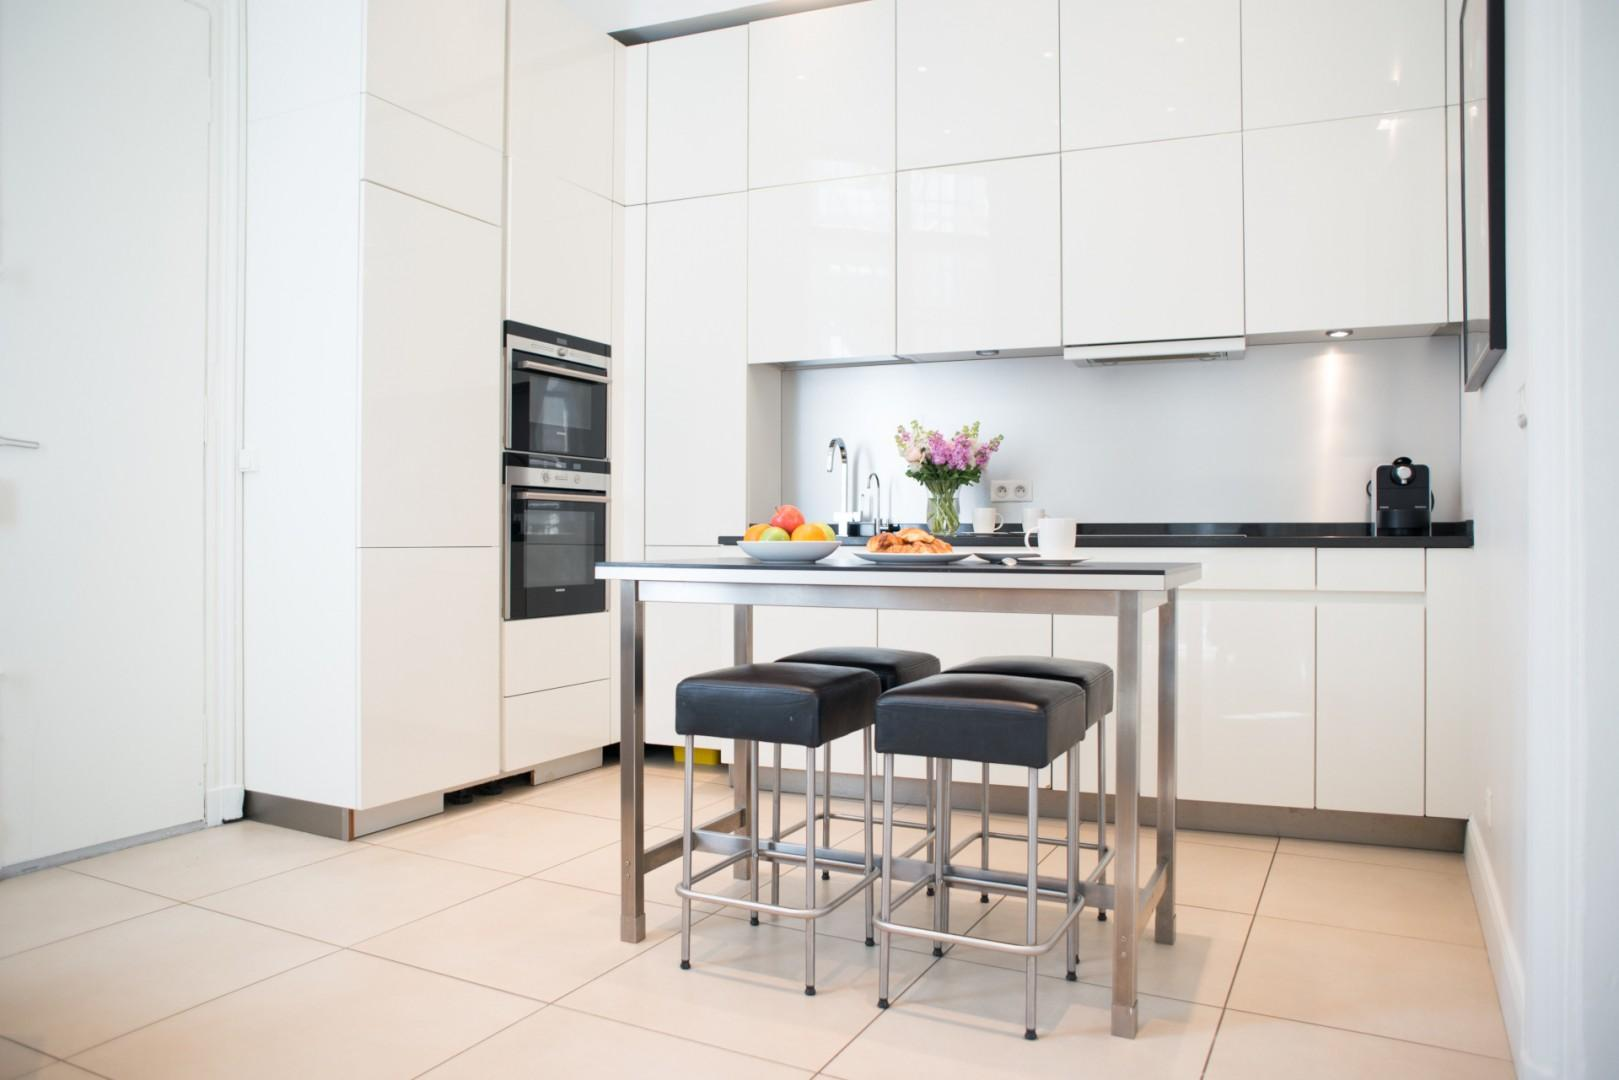 The beautiful modern kitchen is just off the living room.